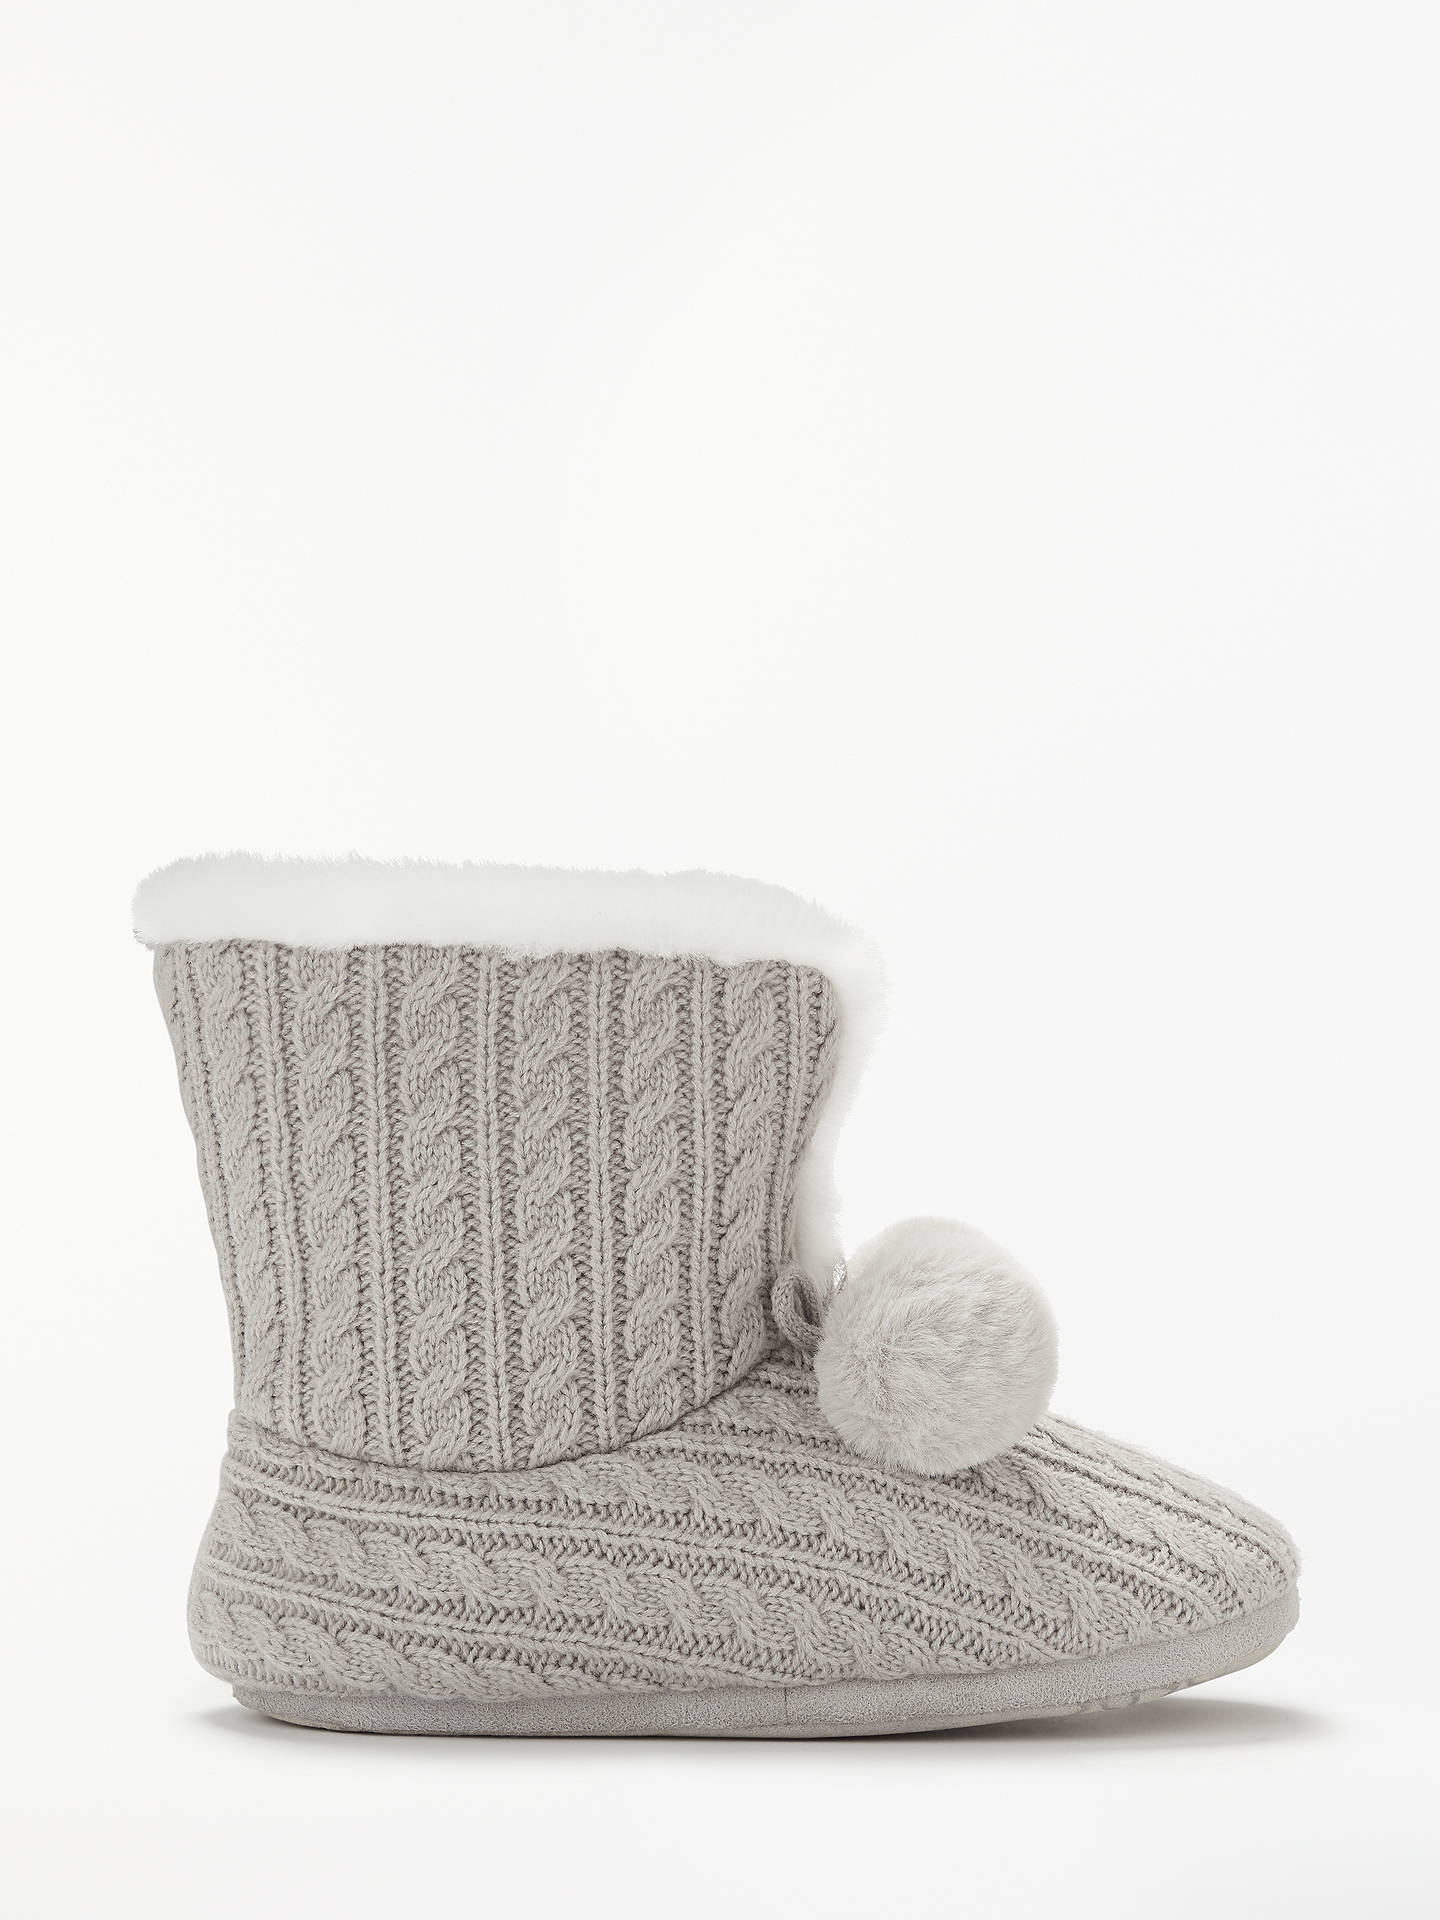 5ae2b014ecc Buy John Lewis   Partners Cable Knit Boot Slippers